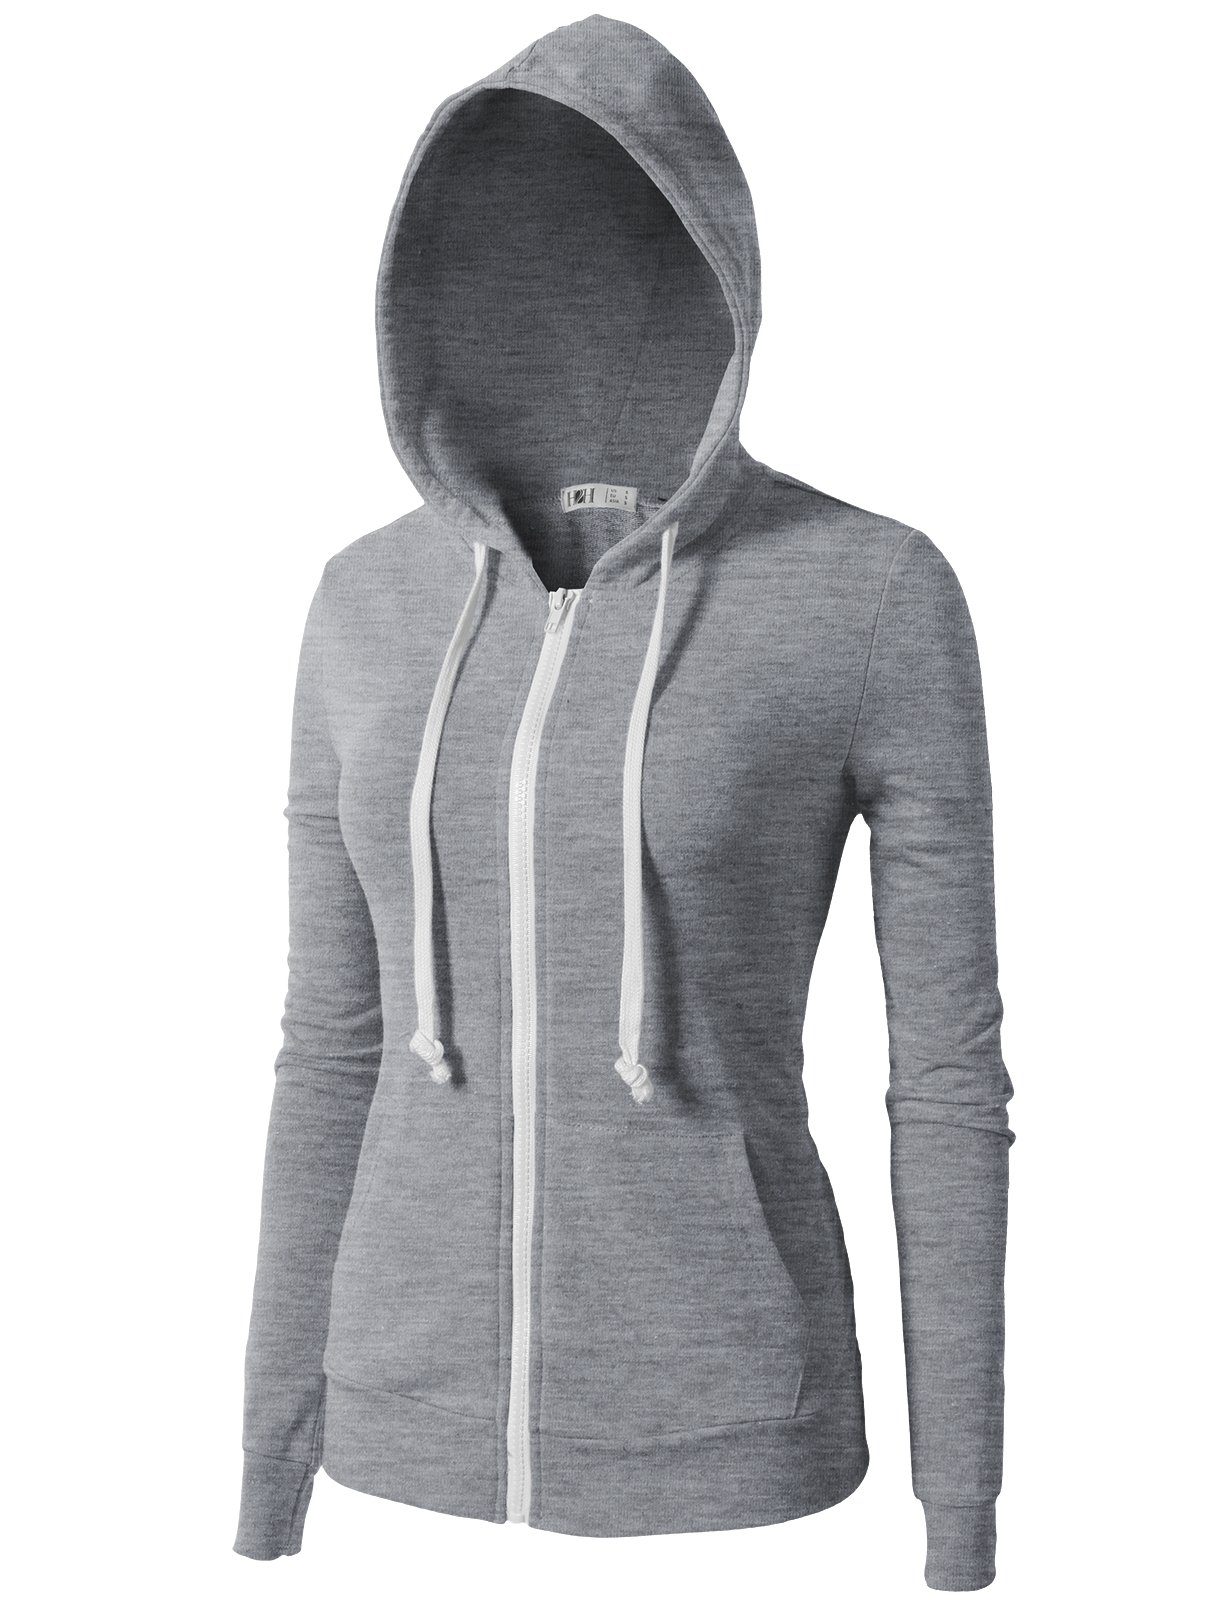 H2H Womens Soft Regular Fit Zip up Long Sleeve Fine Cotton Hoodie Jacket Gray US XS/Asia XS (CWOHOL020) by H2H (Image #3)